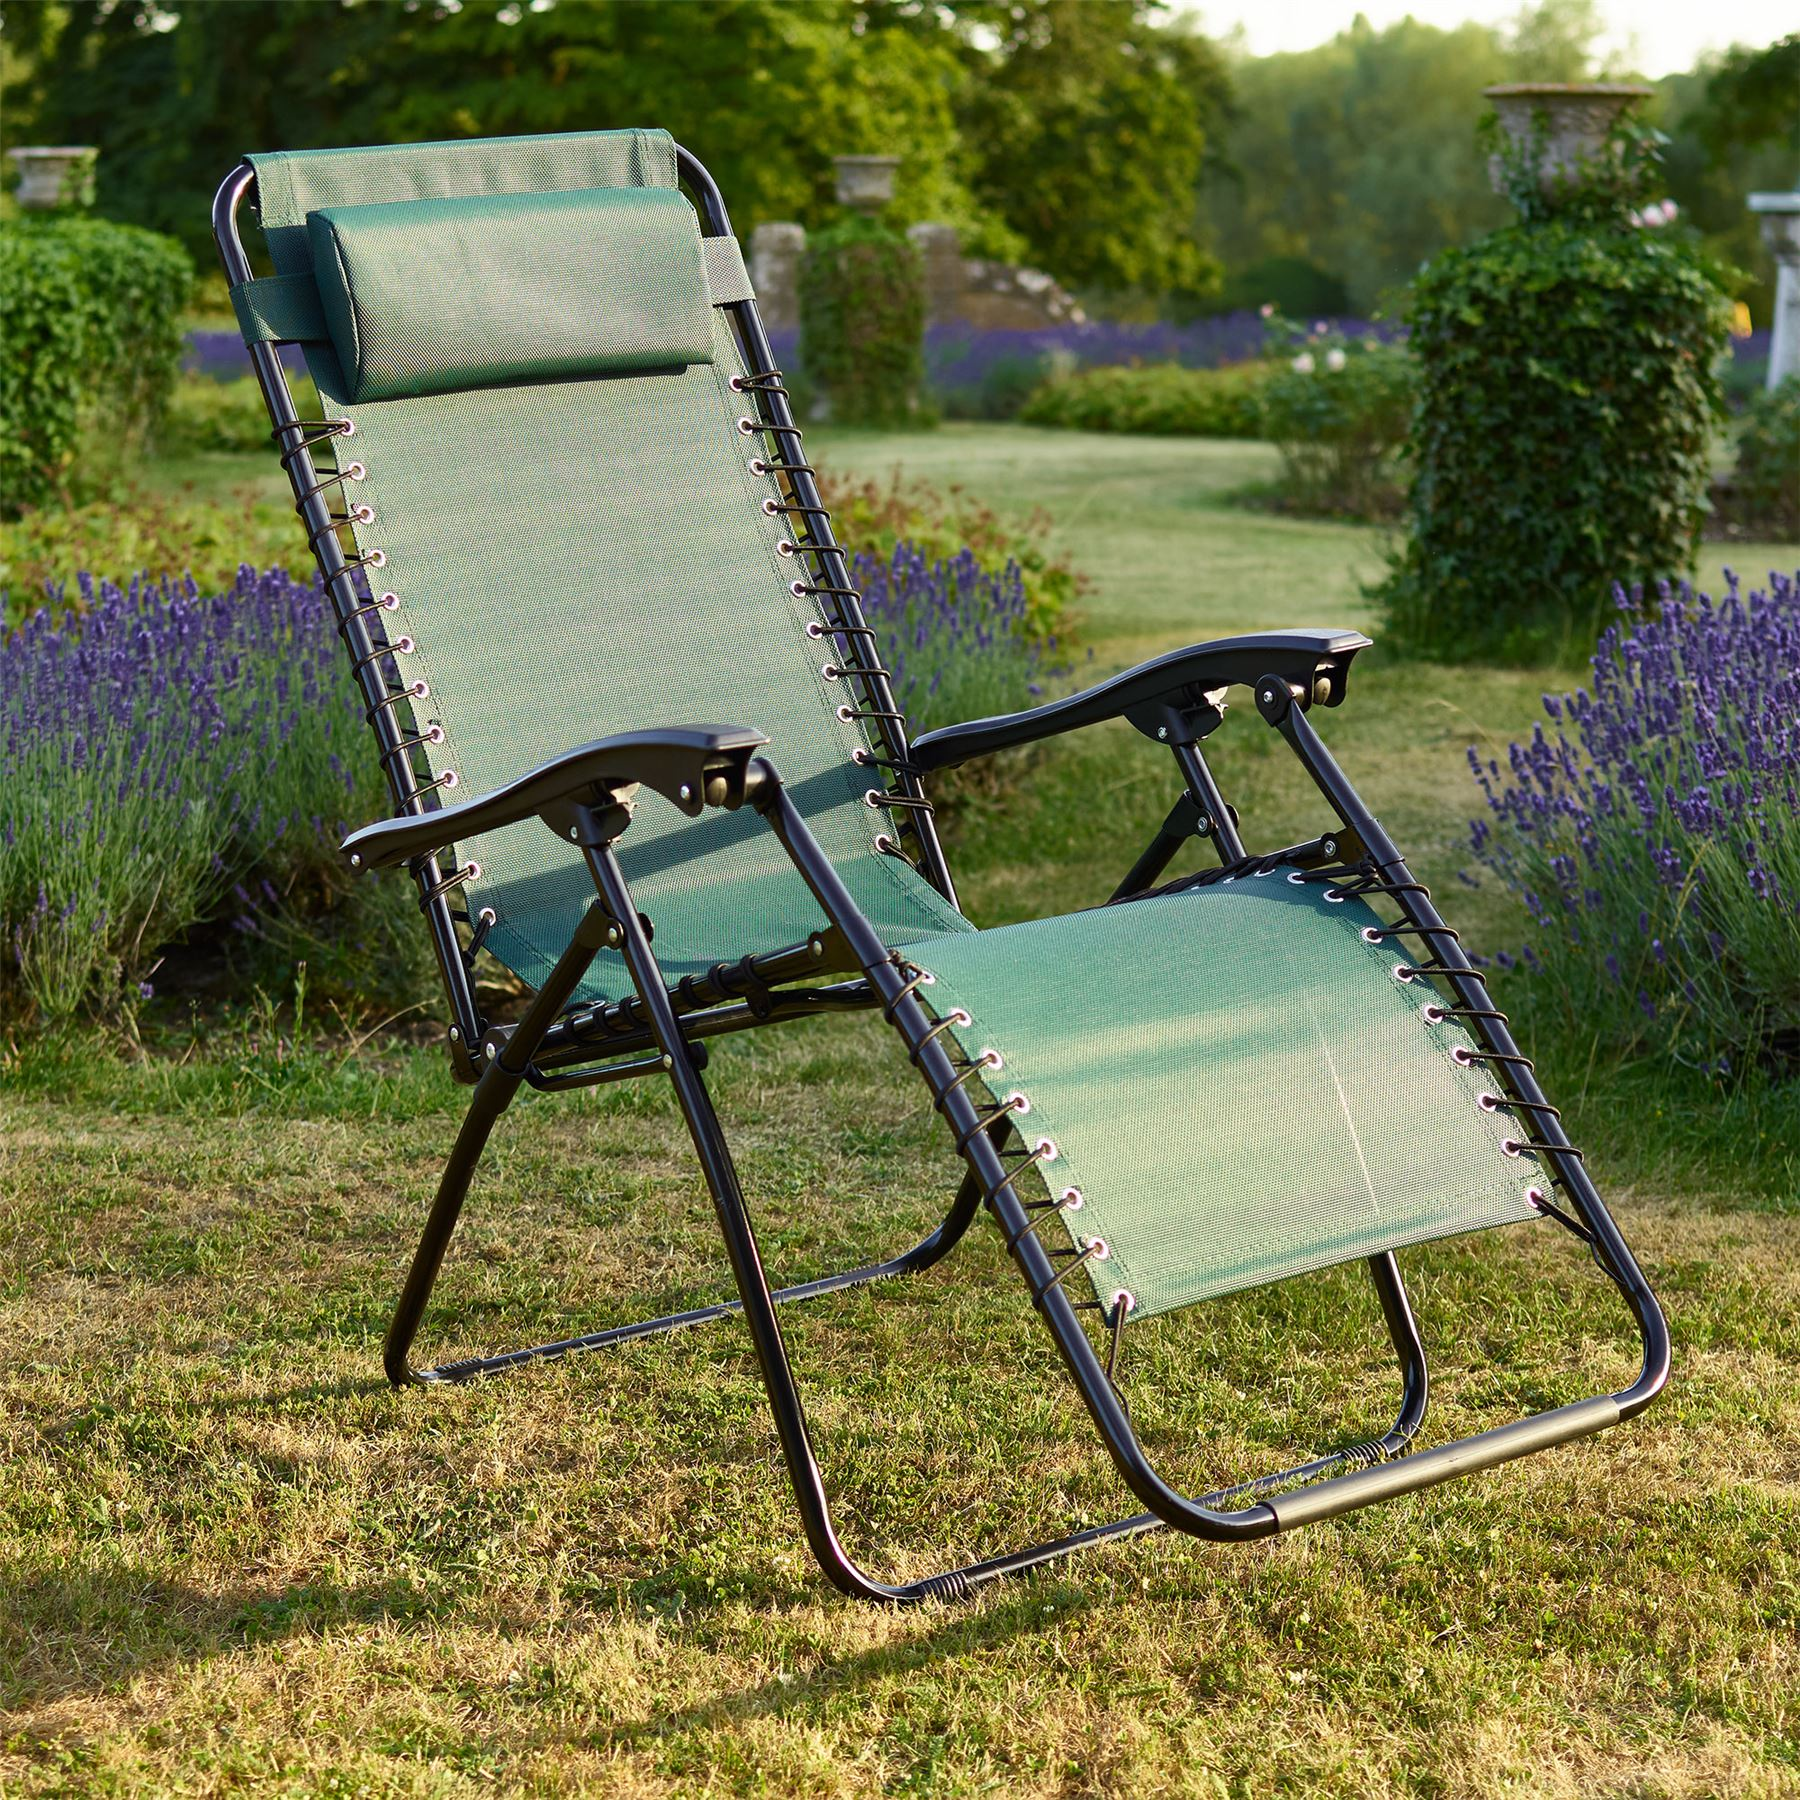 vinsani textoline gravity reclining garden chairs in various